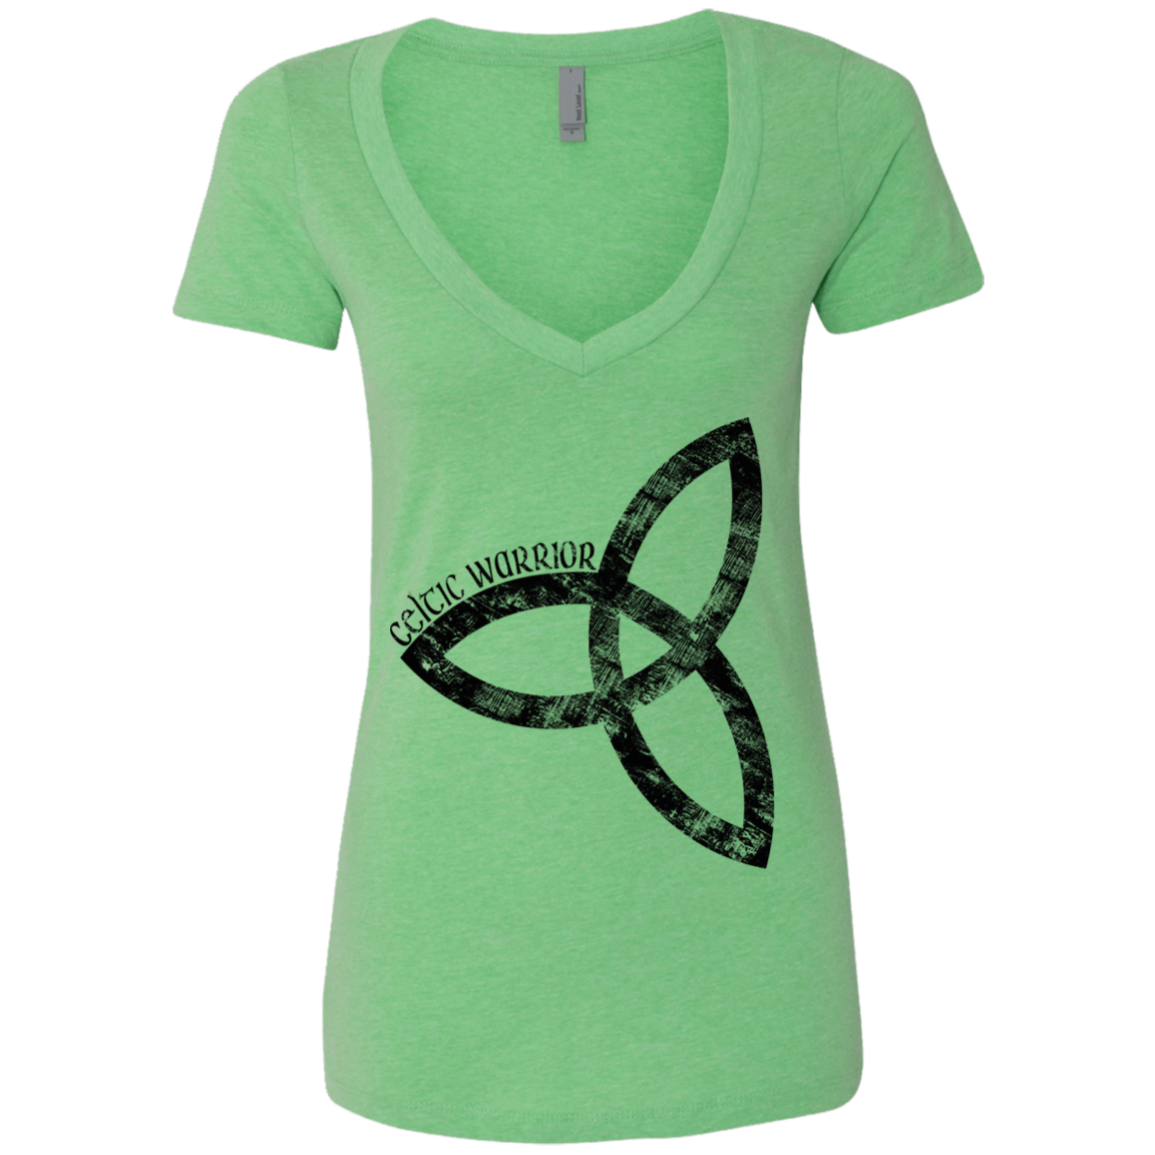 Celtic Warrior CK Ladies' Deep V-Neck T-Shirt